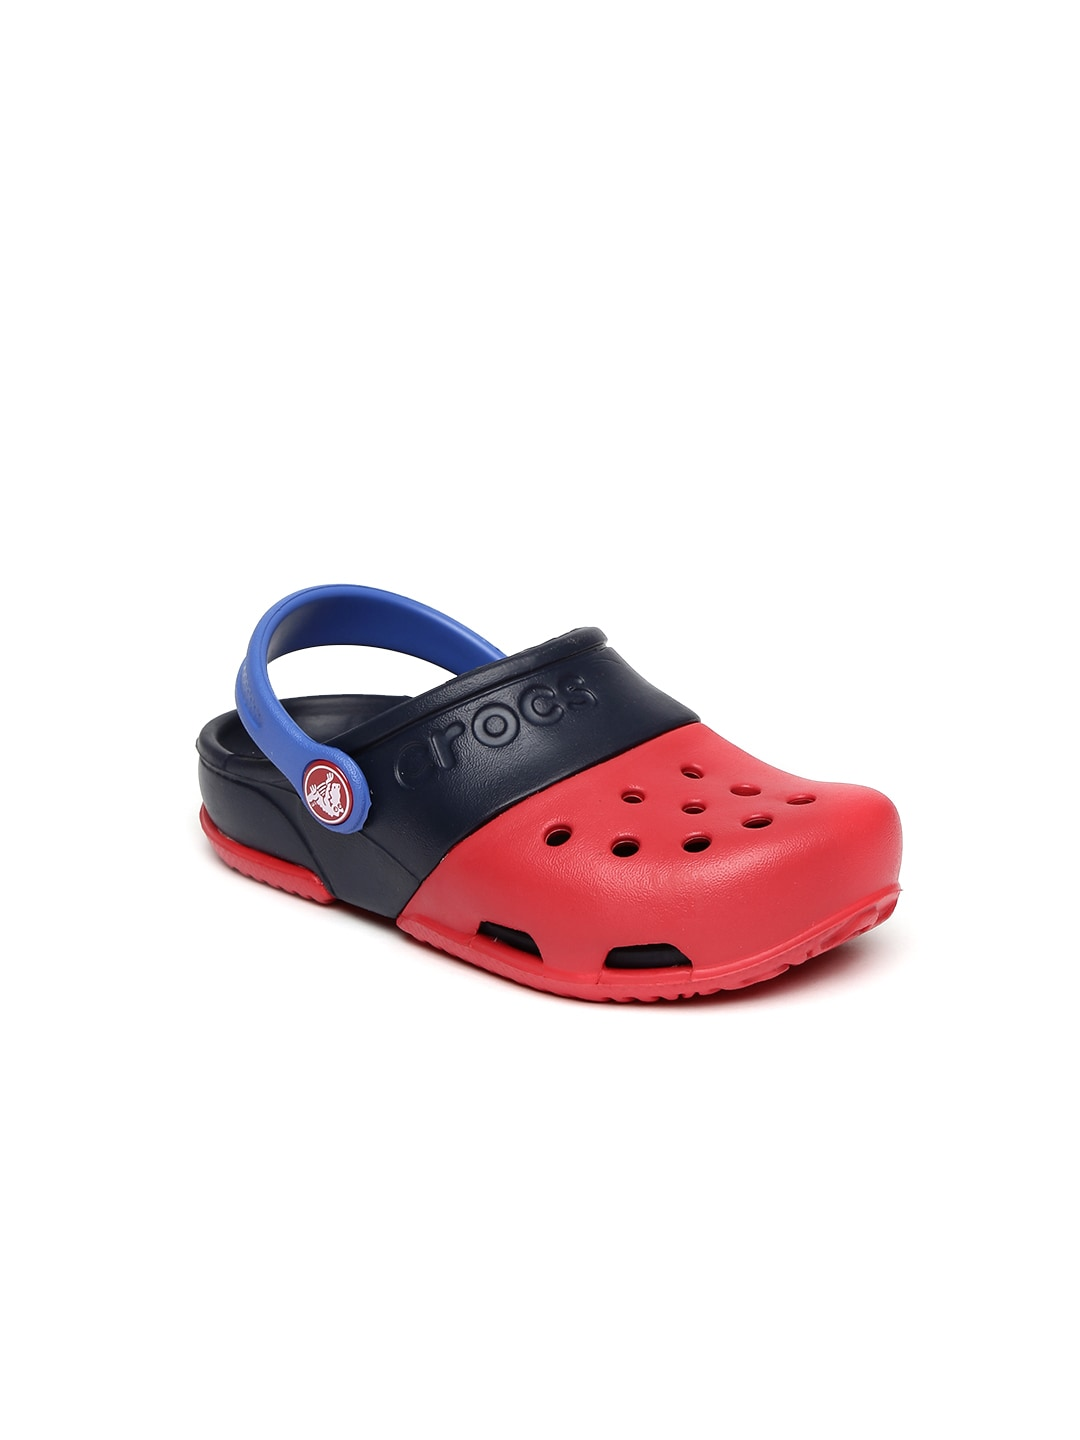 768bf5f50e38 Crocs Boys Shoes - Buy Crocs Boys Shoes online in India